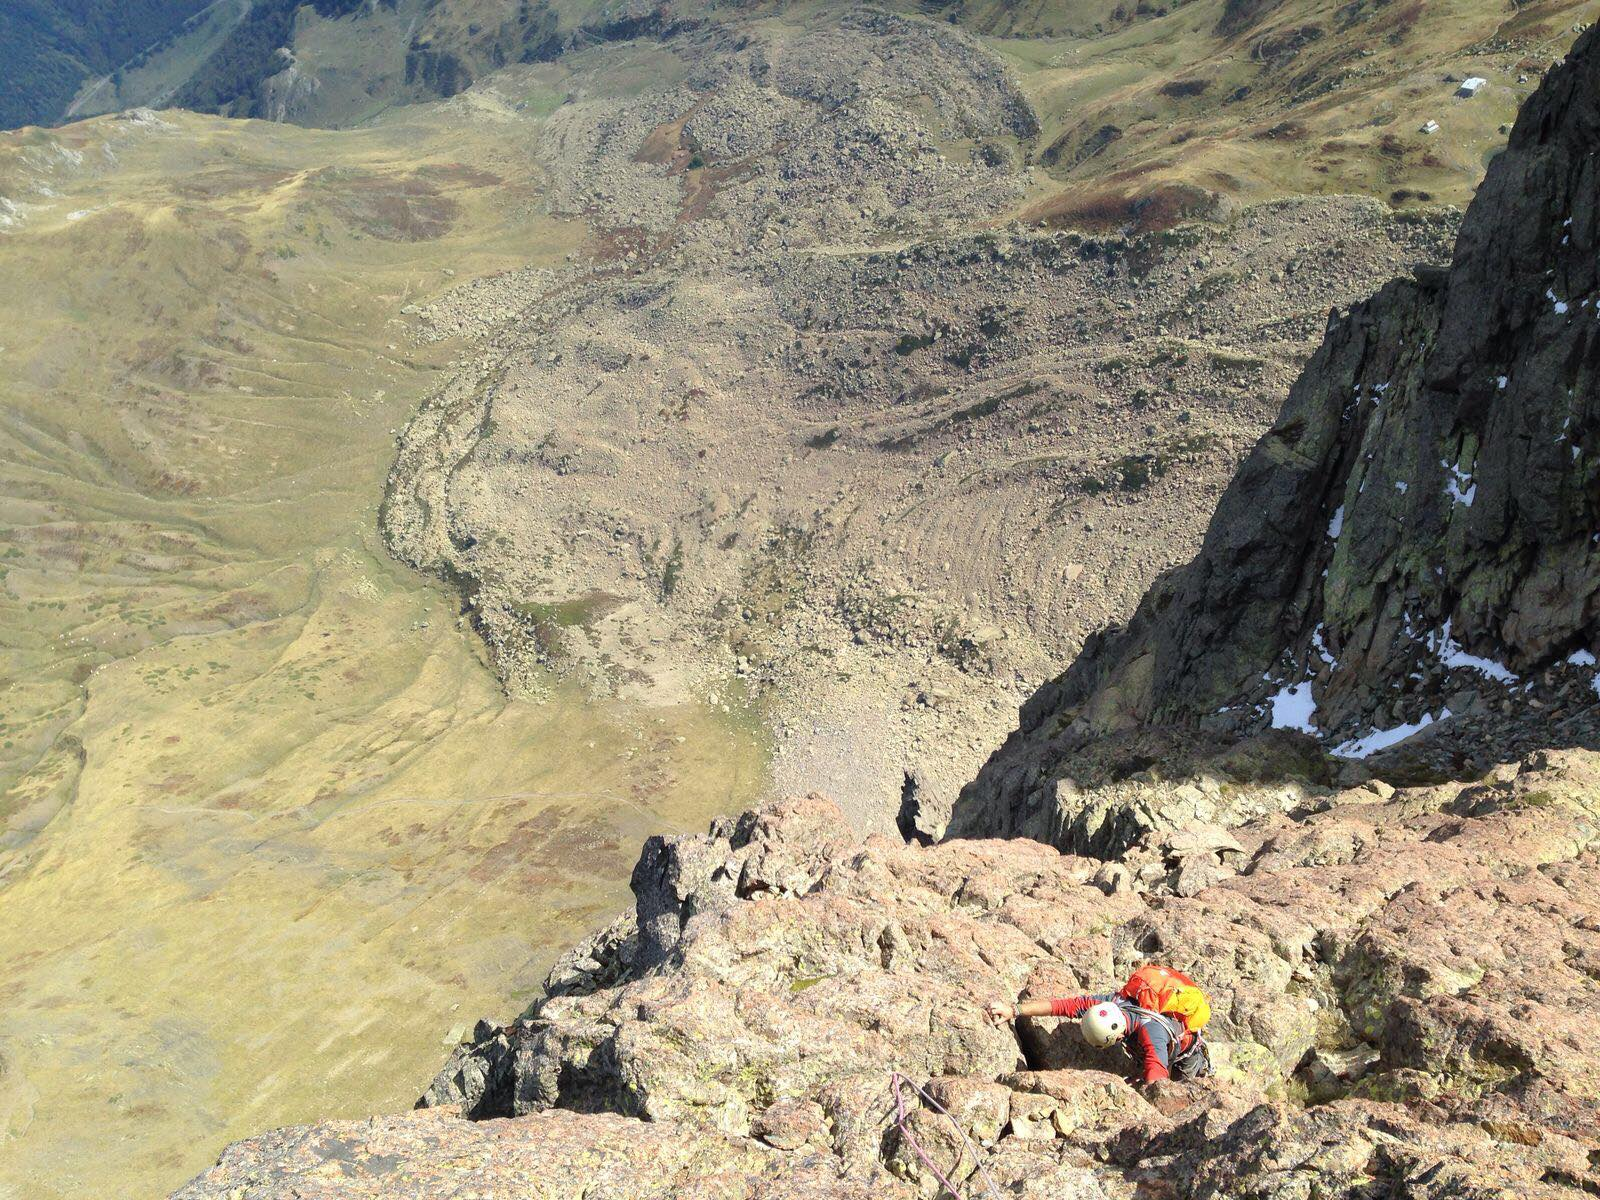 Classic guided climbing in Torla-Ordesa and the Pyrenees